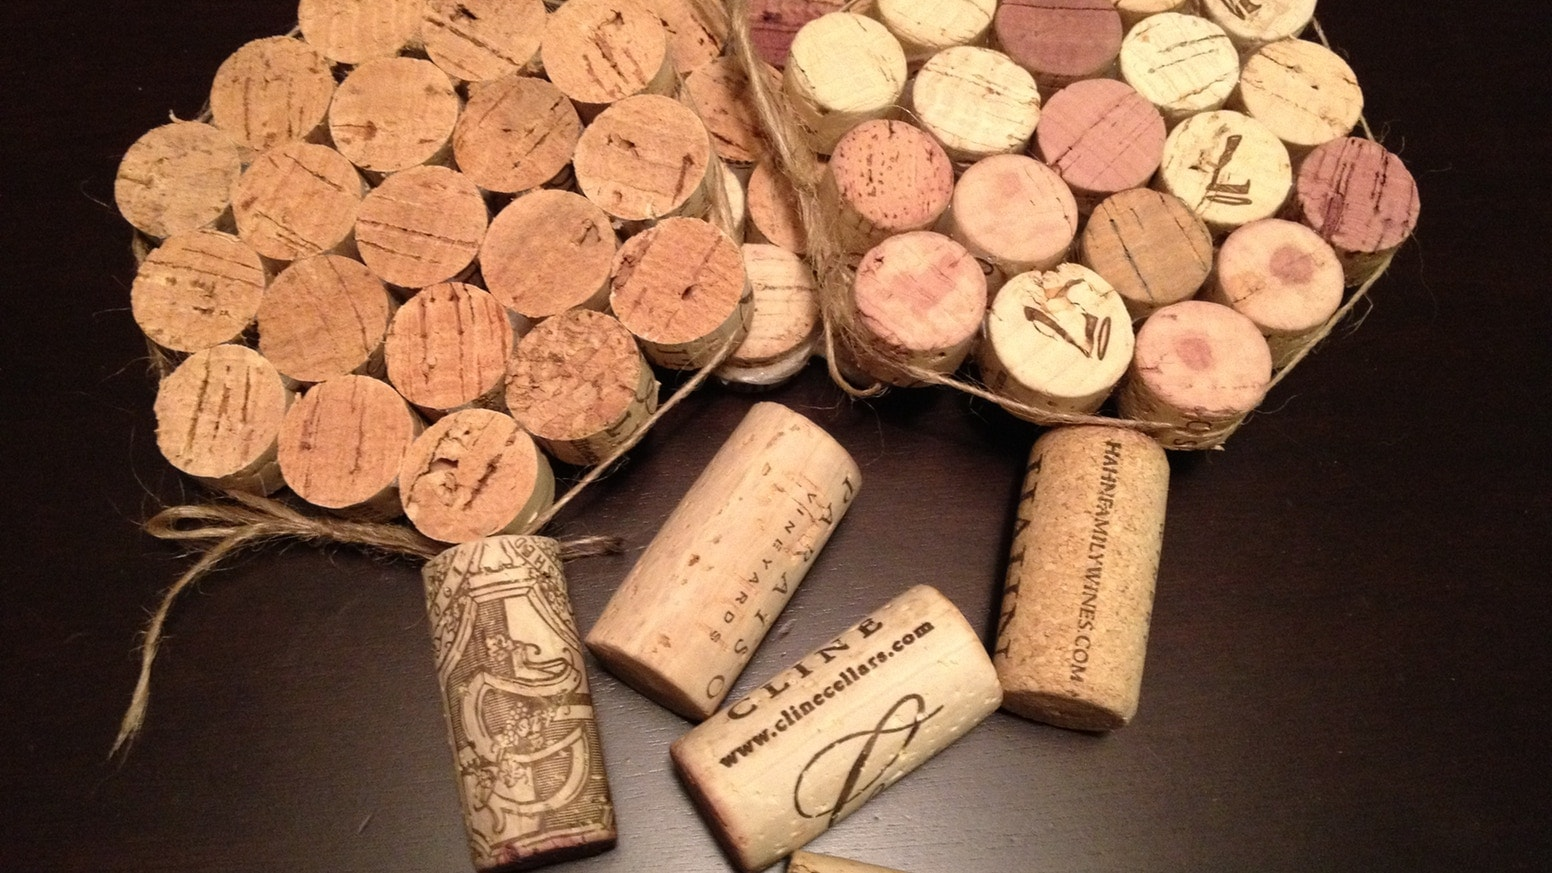 Uses of cork, cork plug